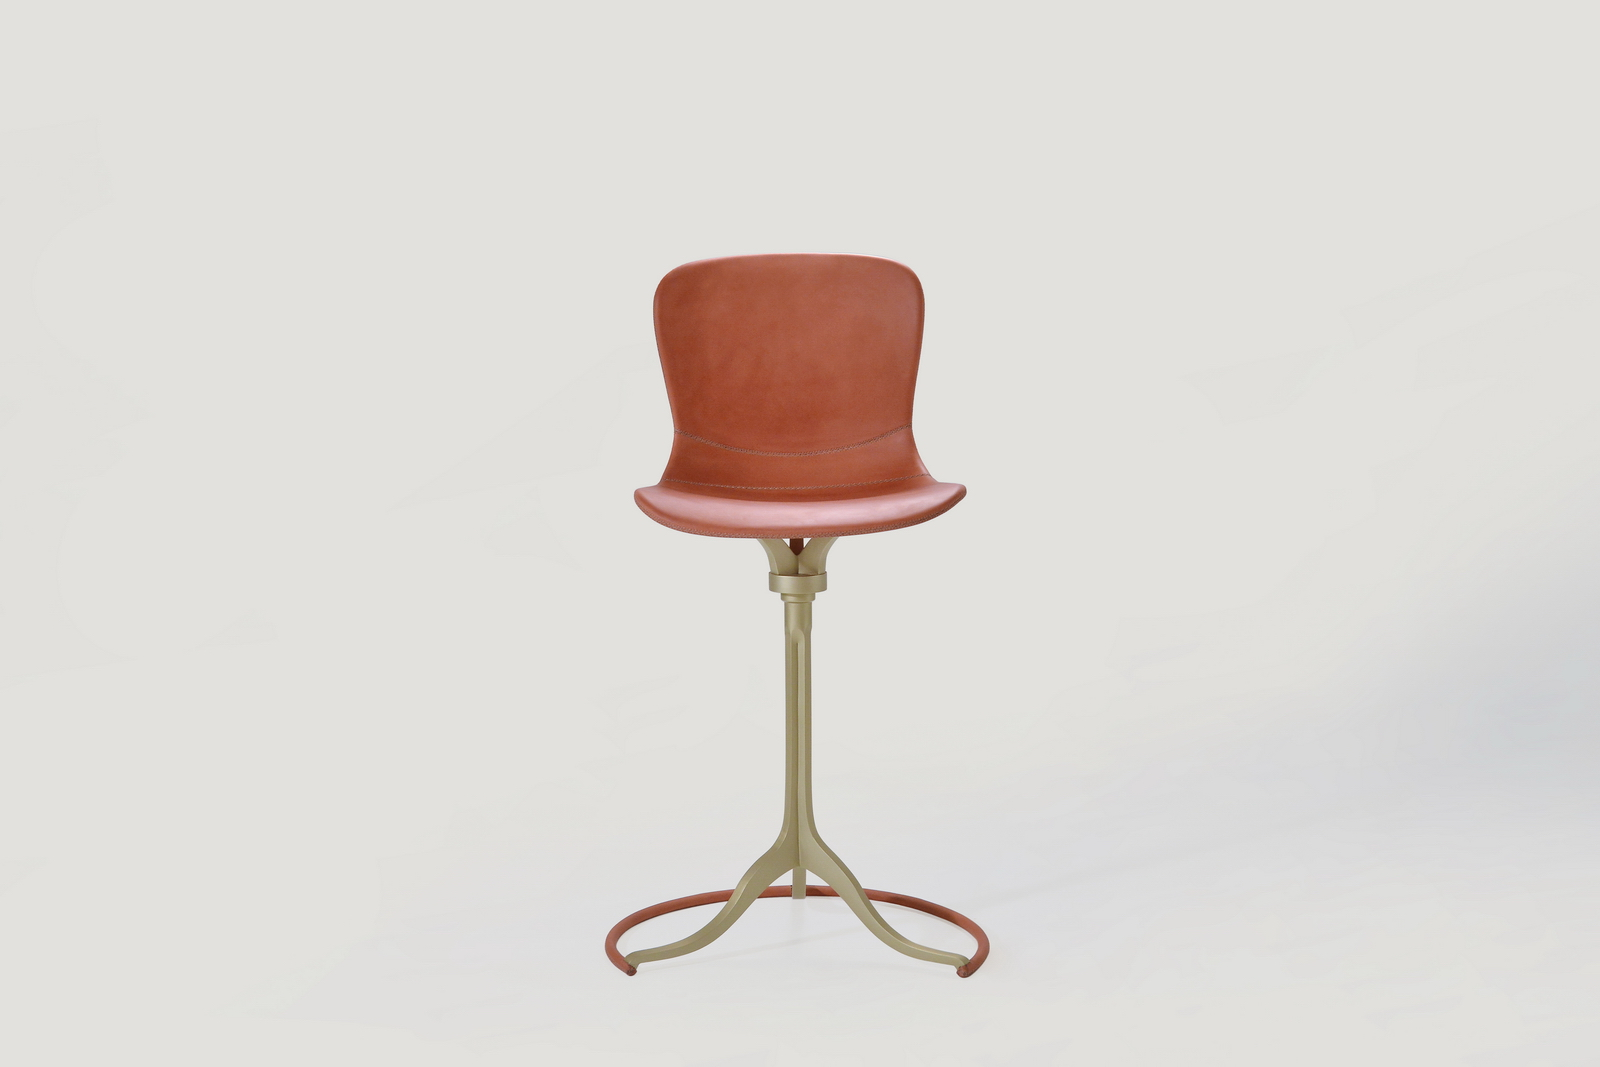 PTendercool-Chair-PT471-BS1-VR-200218-01